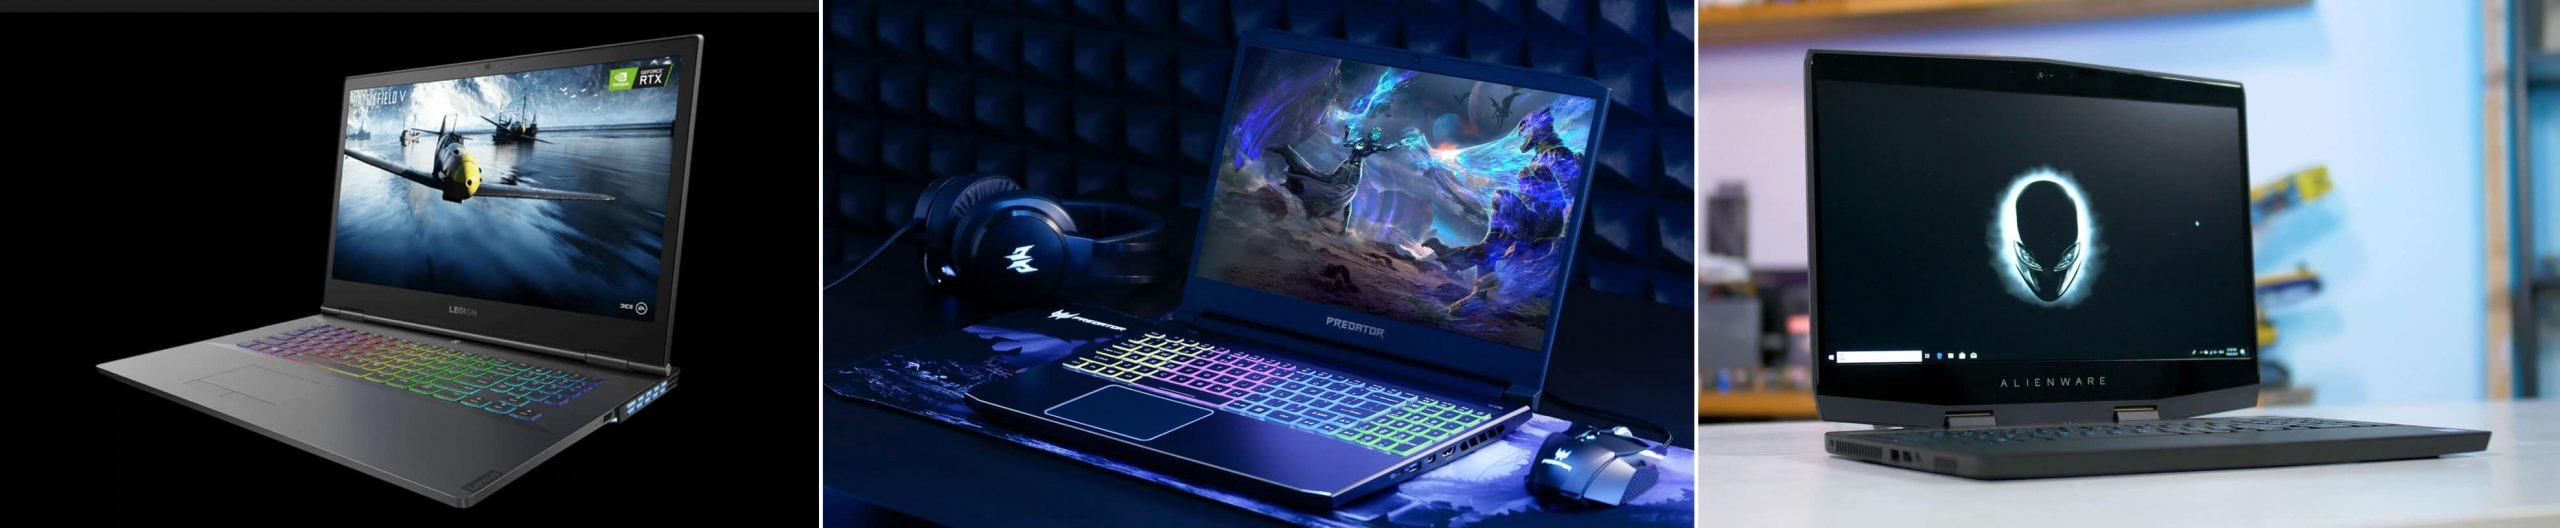 The potential sweet-spots: Lenovo legion Y740, Acer Predator Helios 300 and the Alienware m15